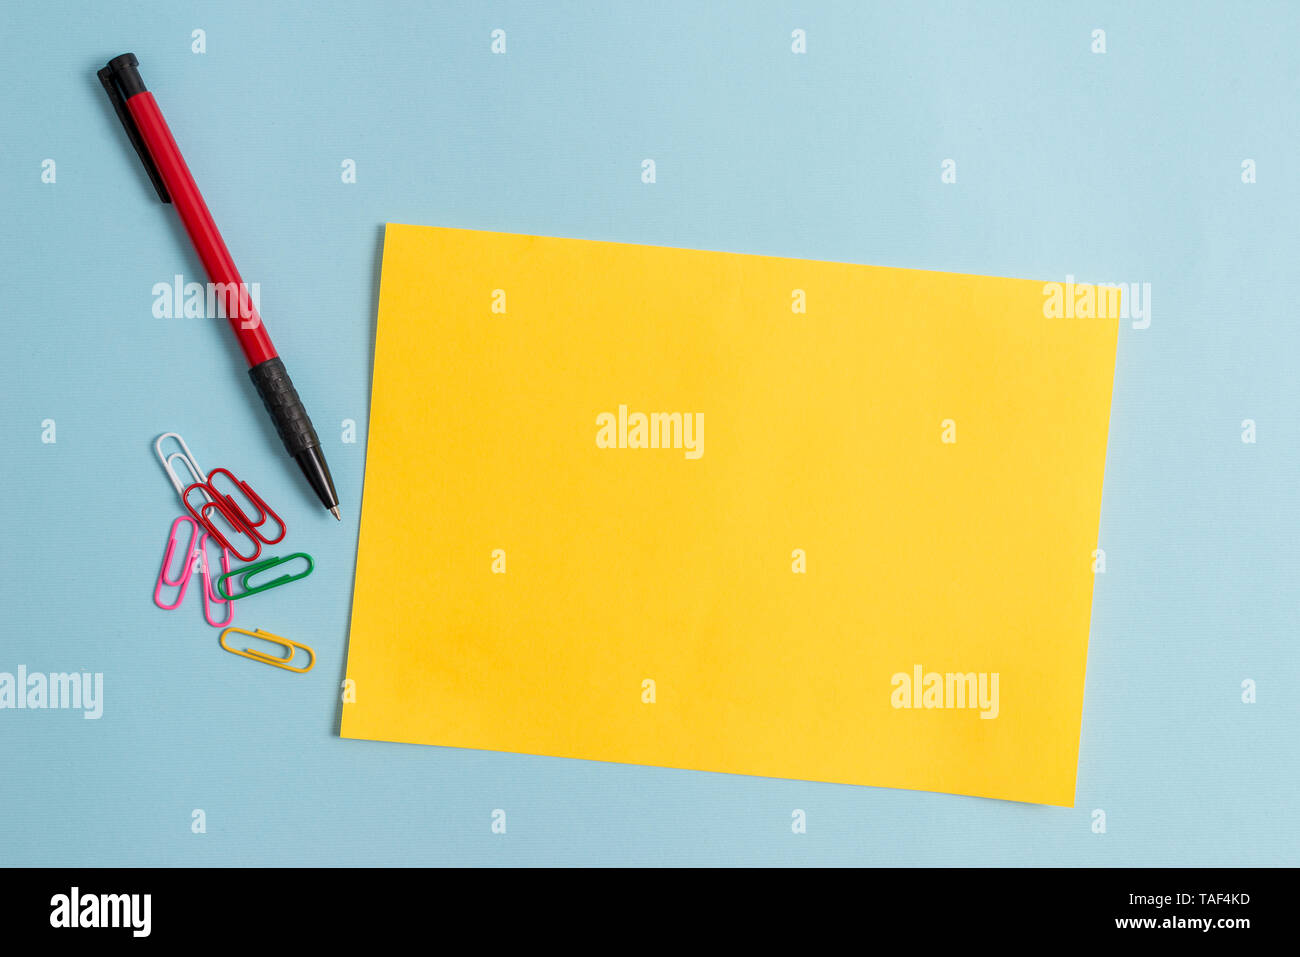 Plain cardboard and writing equipment placed above pastel colour backdrop - Stock Image